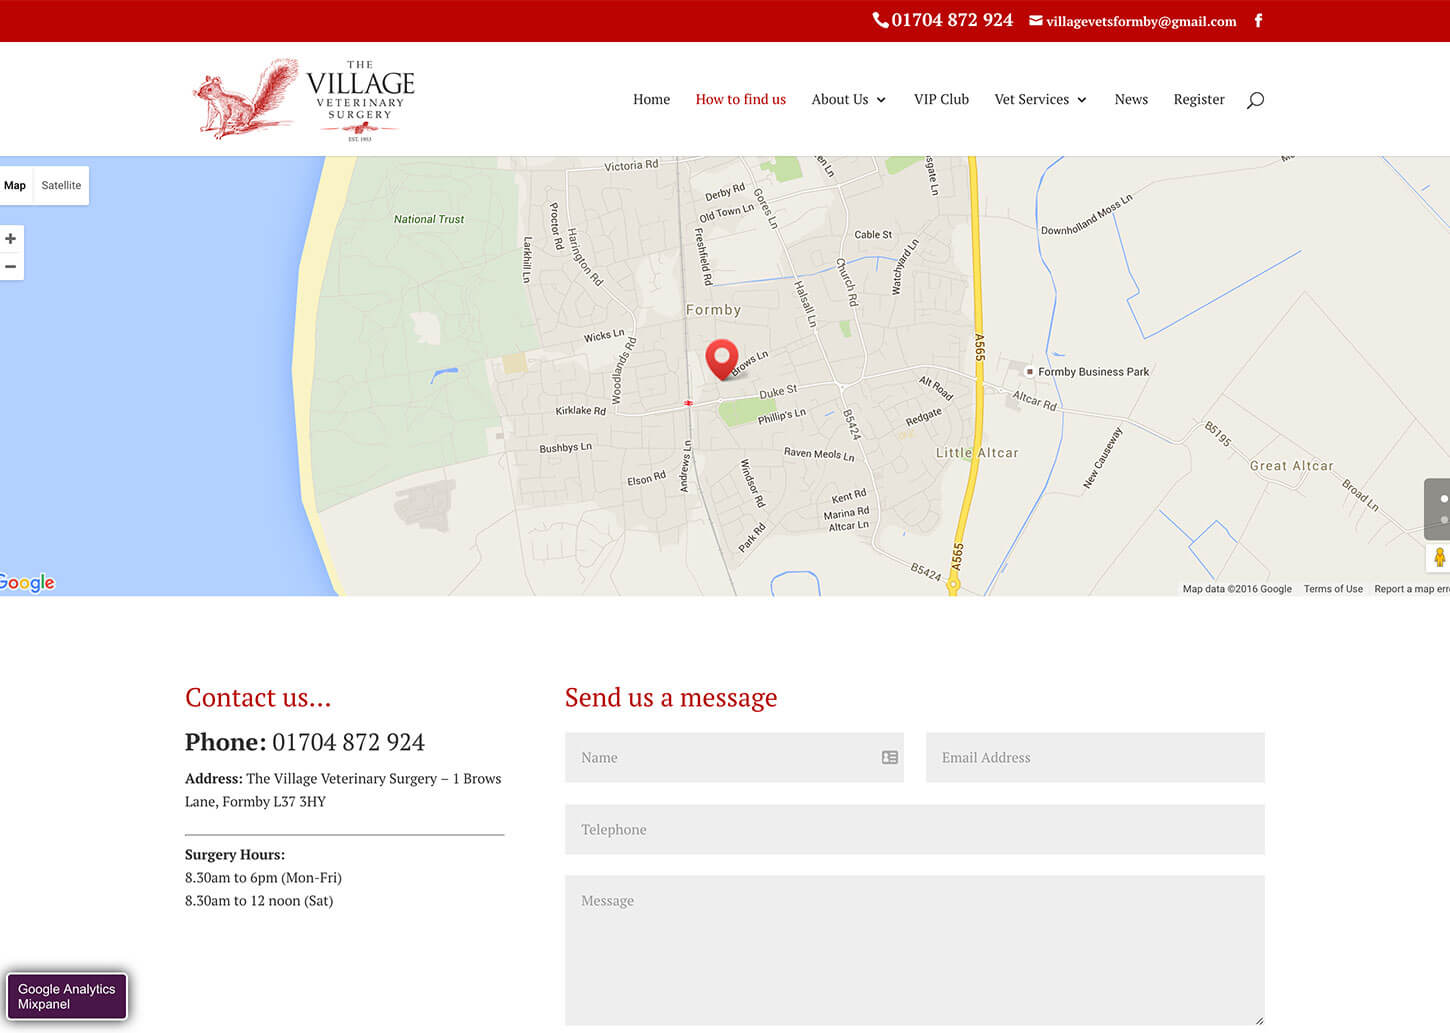 Village Vets website design: Contact page with google map